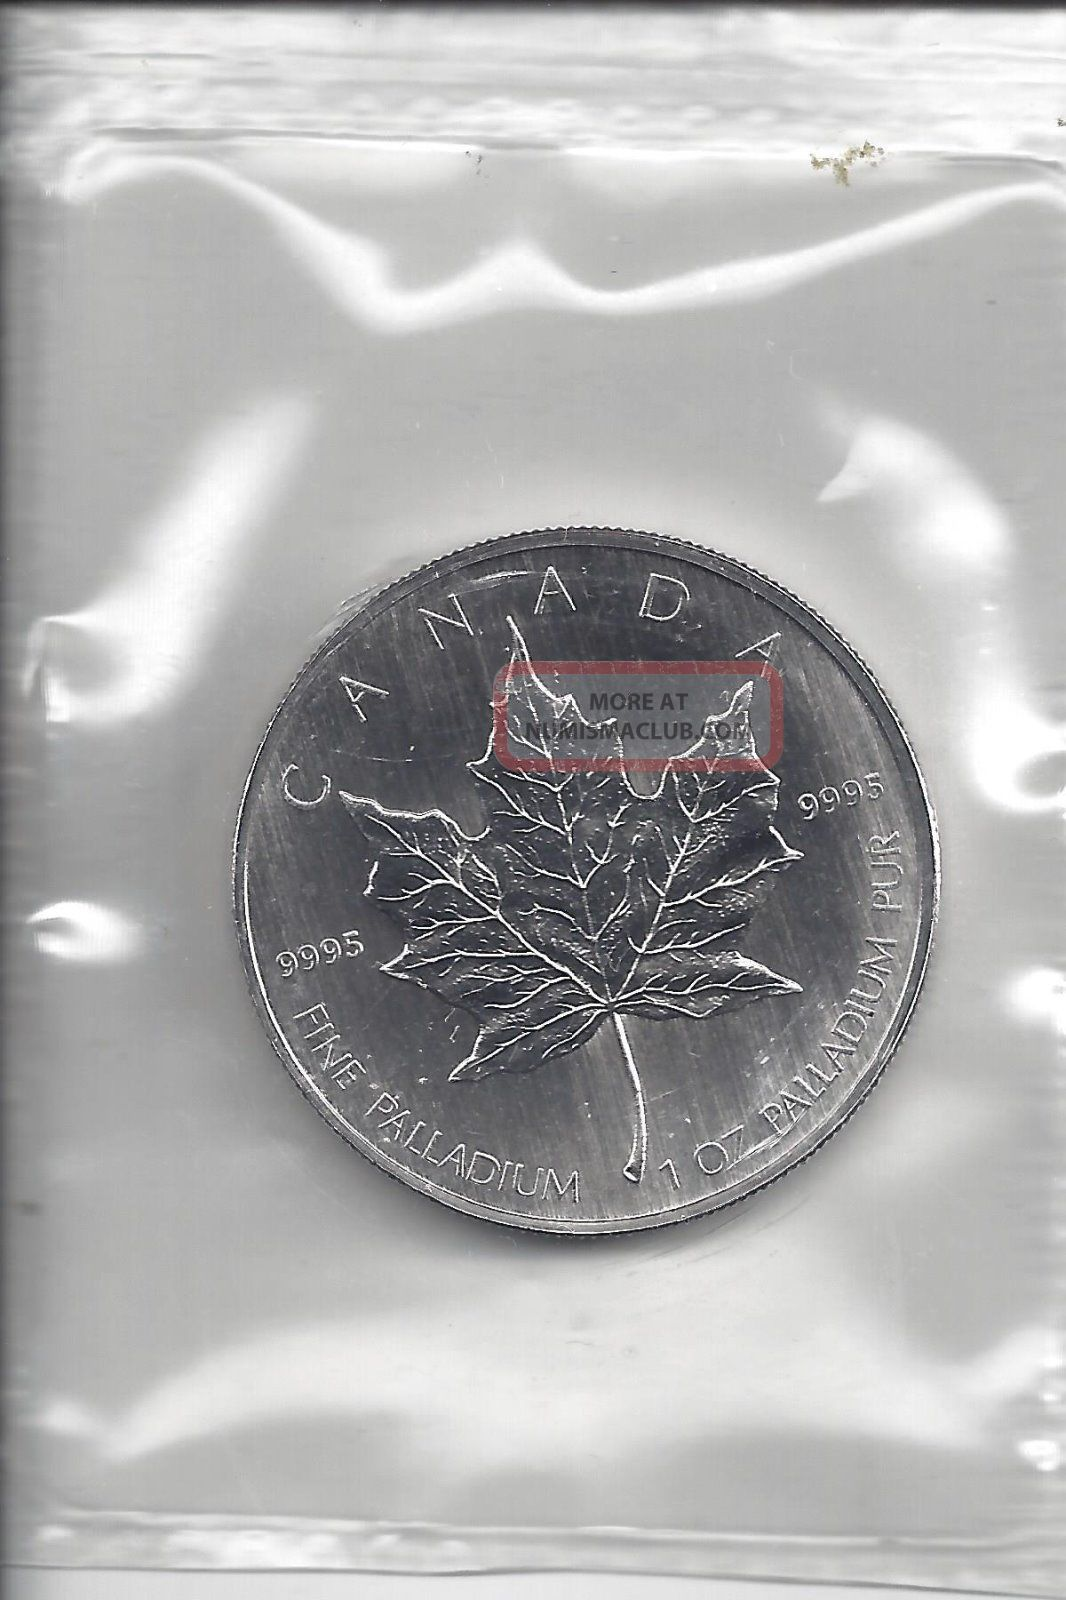 2006 (1oz) Palladium Canadian Maple Leaf - - Bullion photo